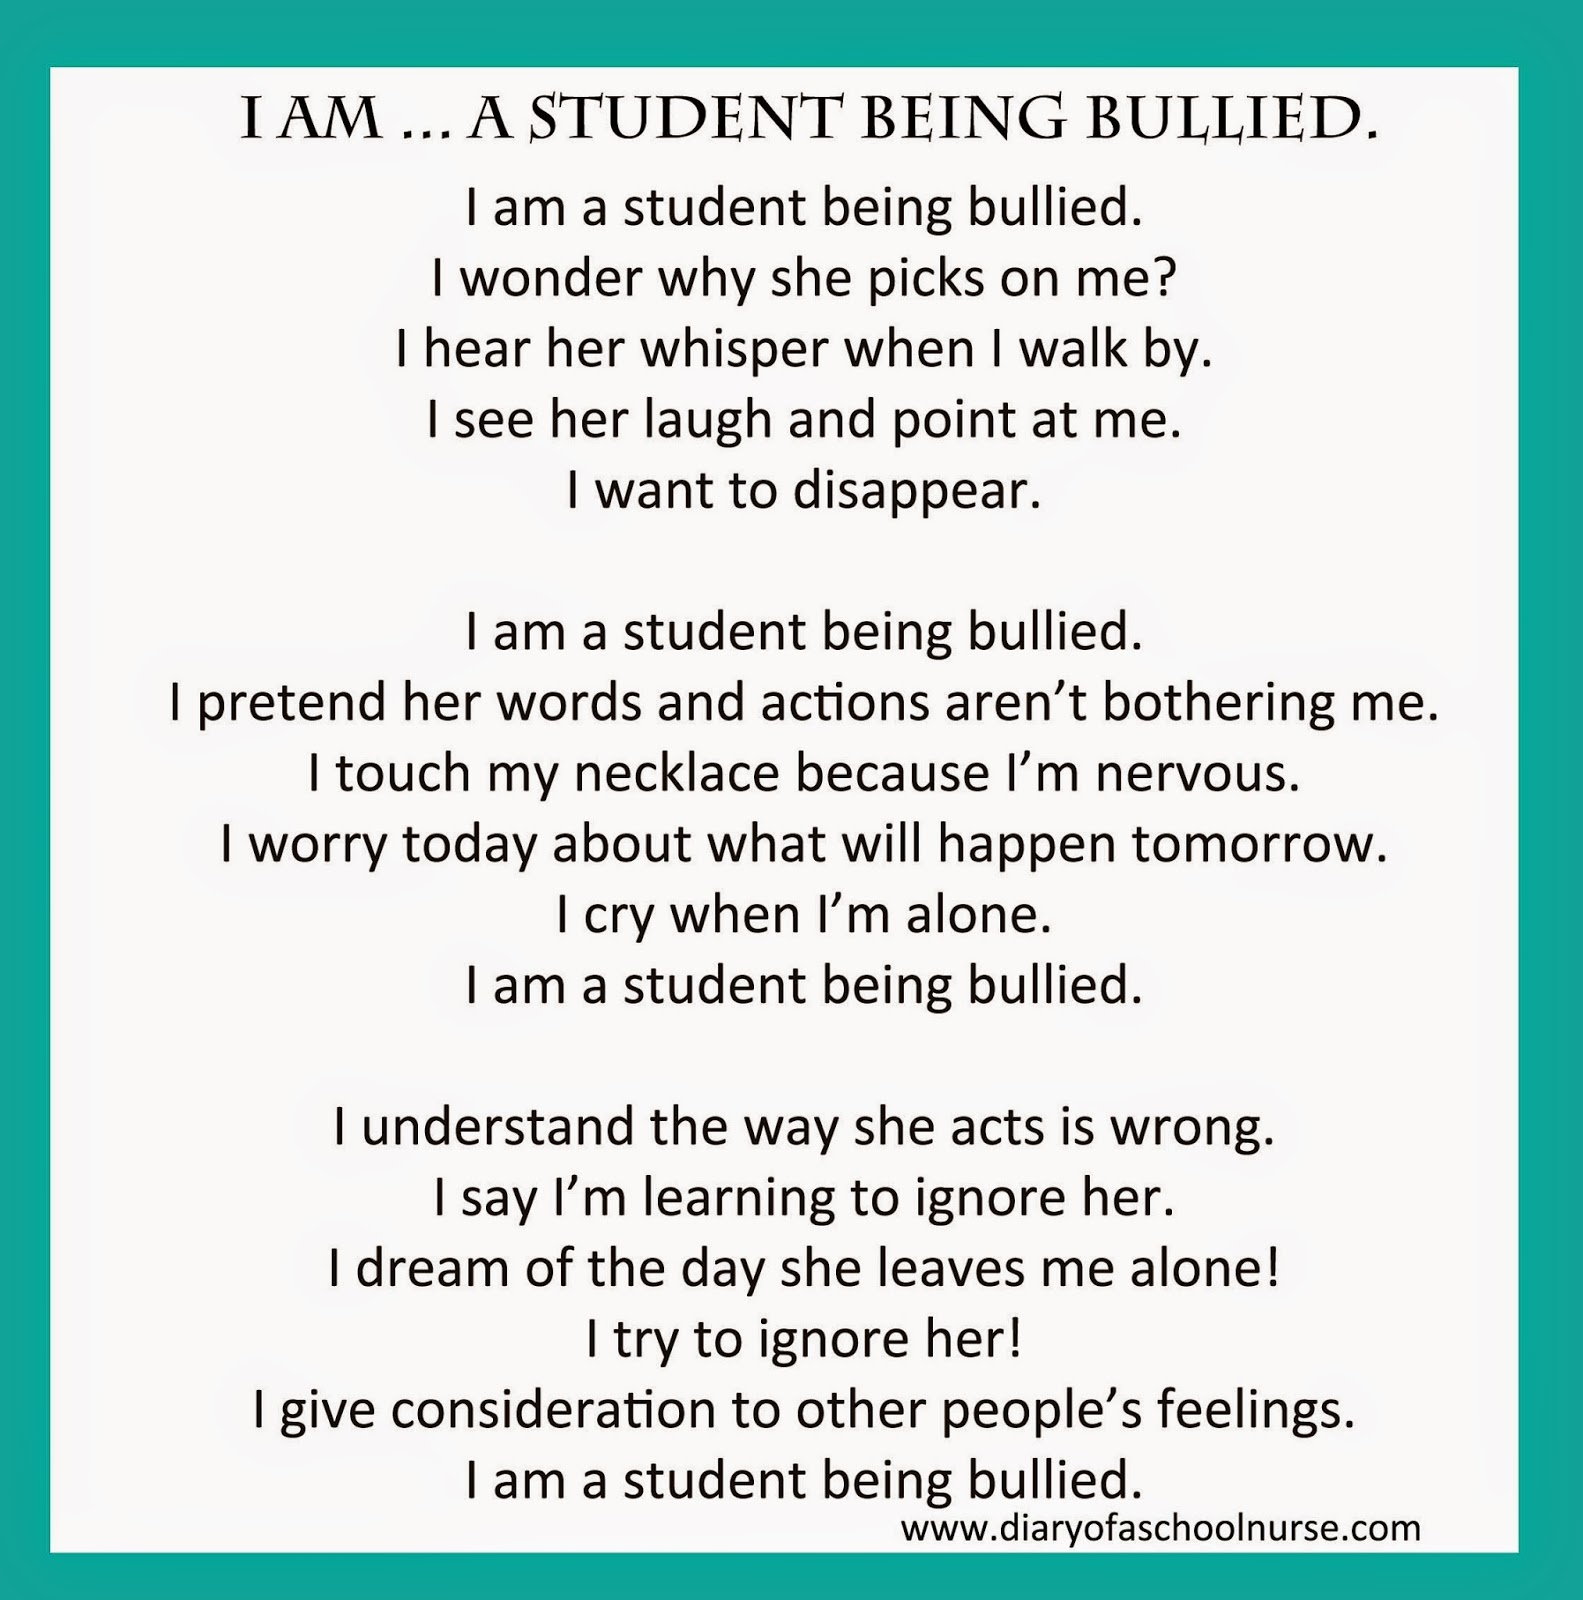 How to write a free verse poem about bullying?